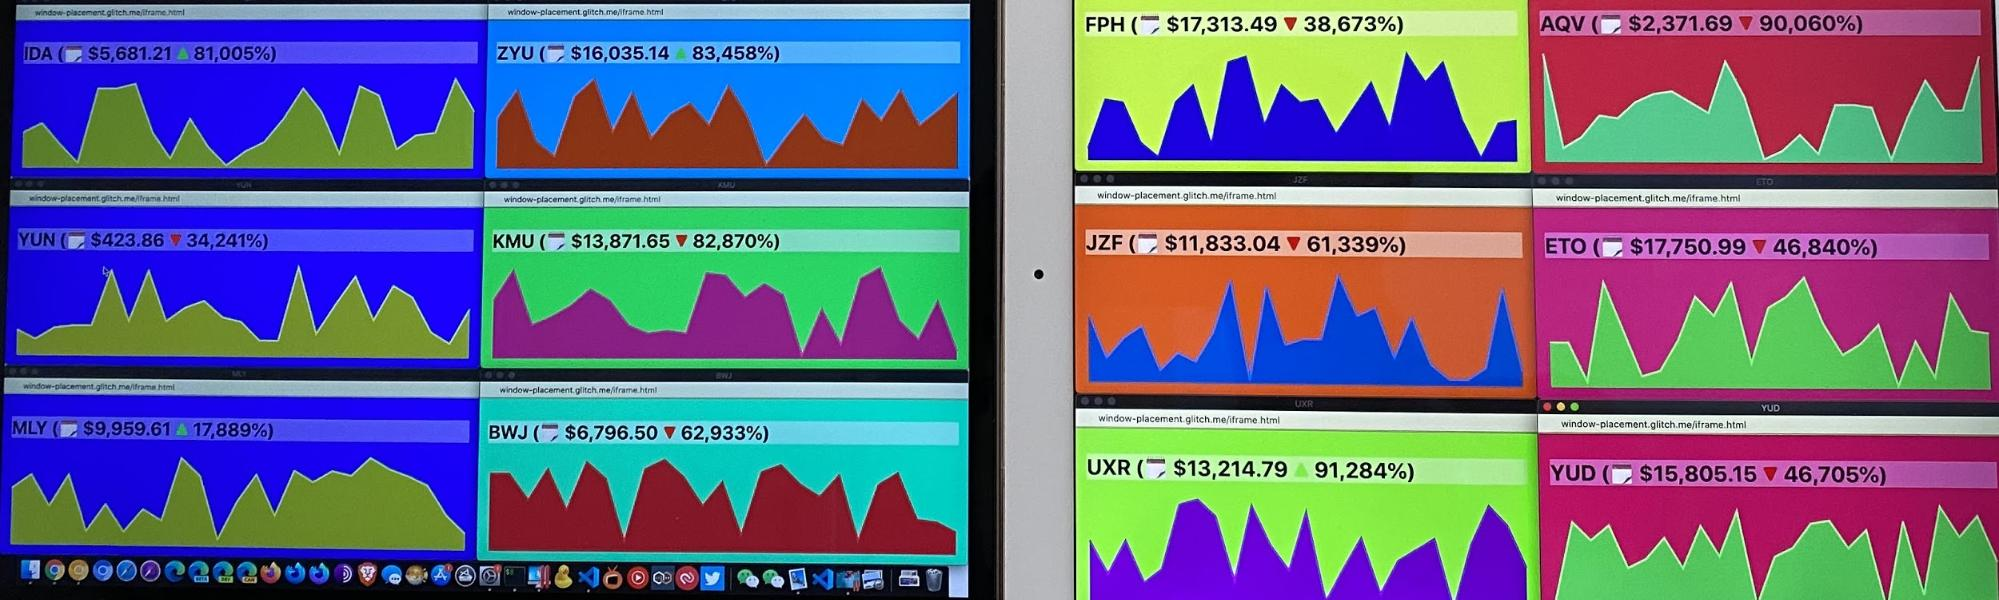 Simulated trading desk showing multiple fake cryptocurrencies and their price charts.